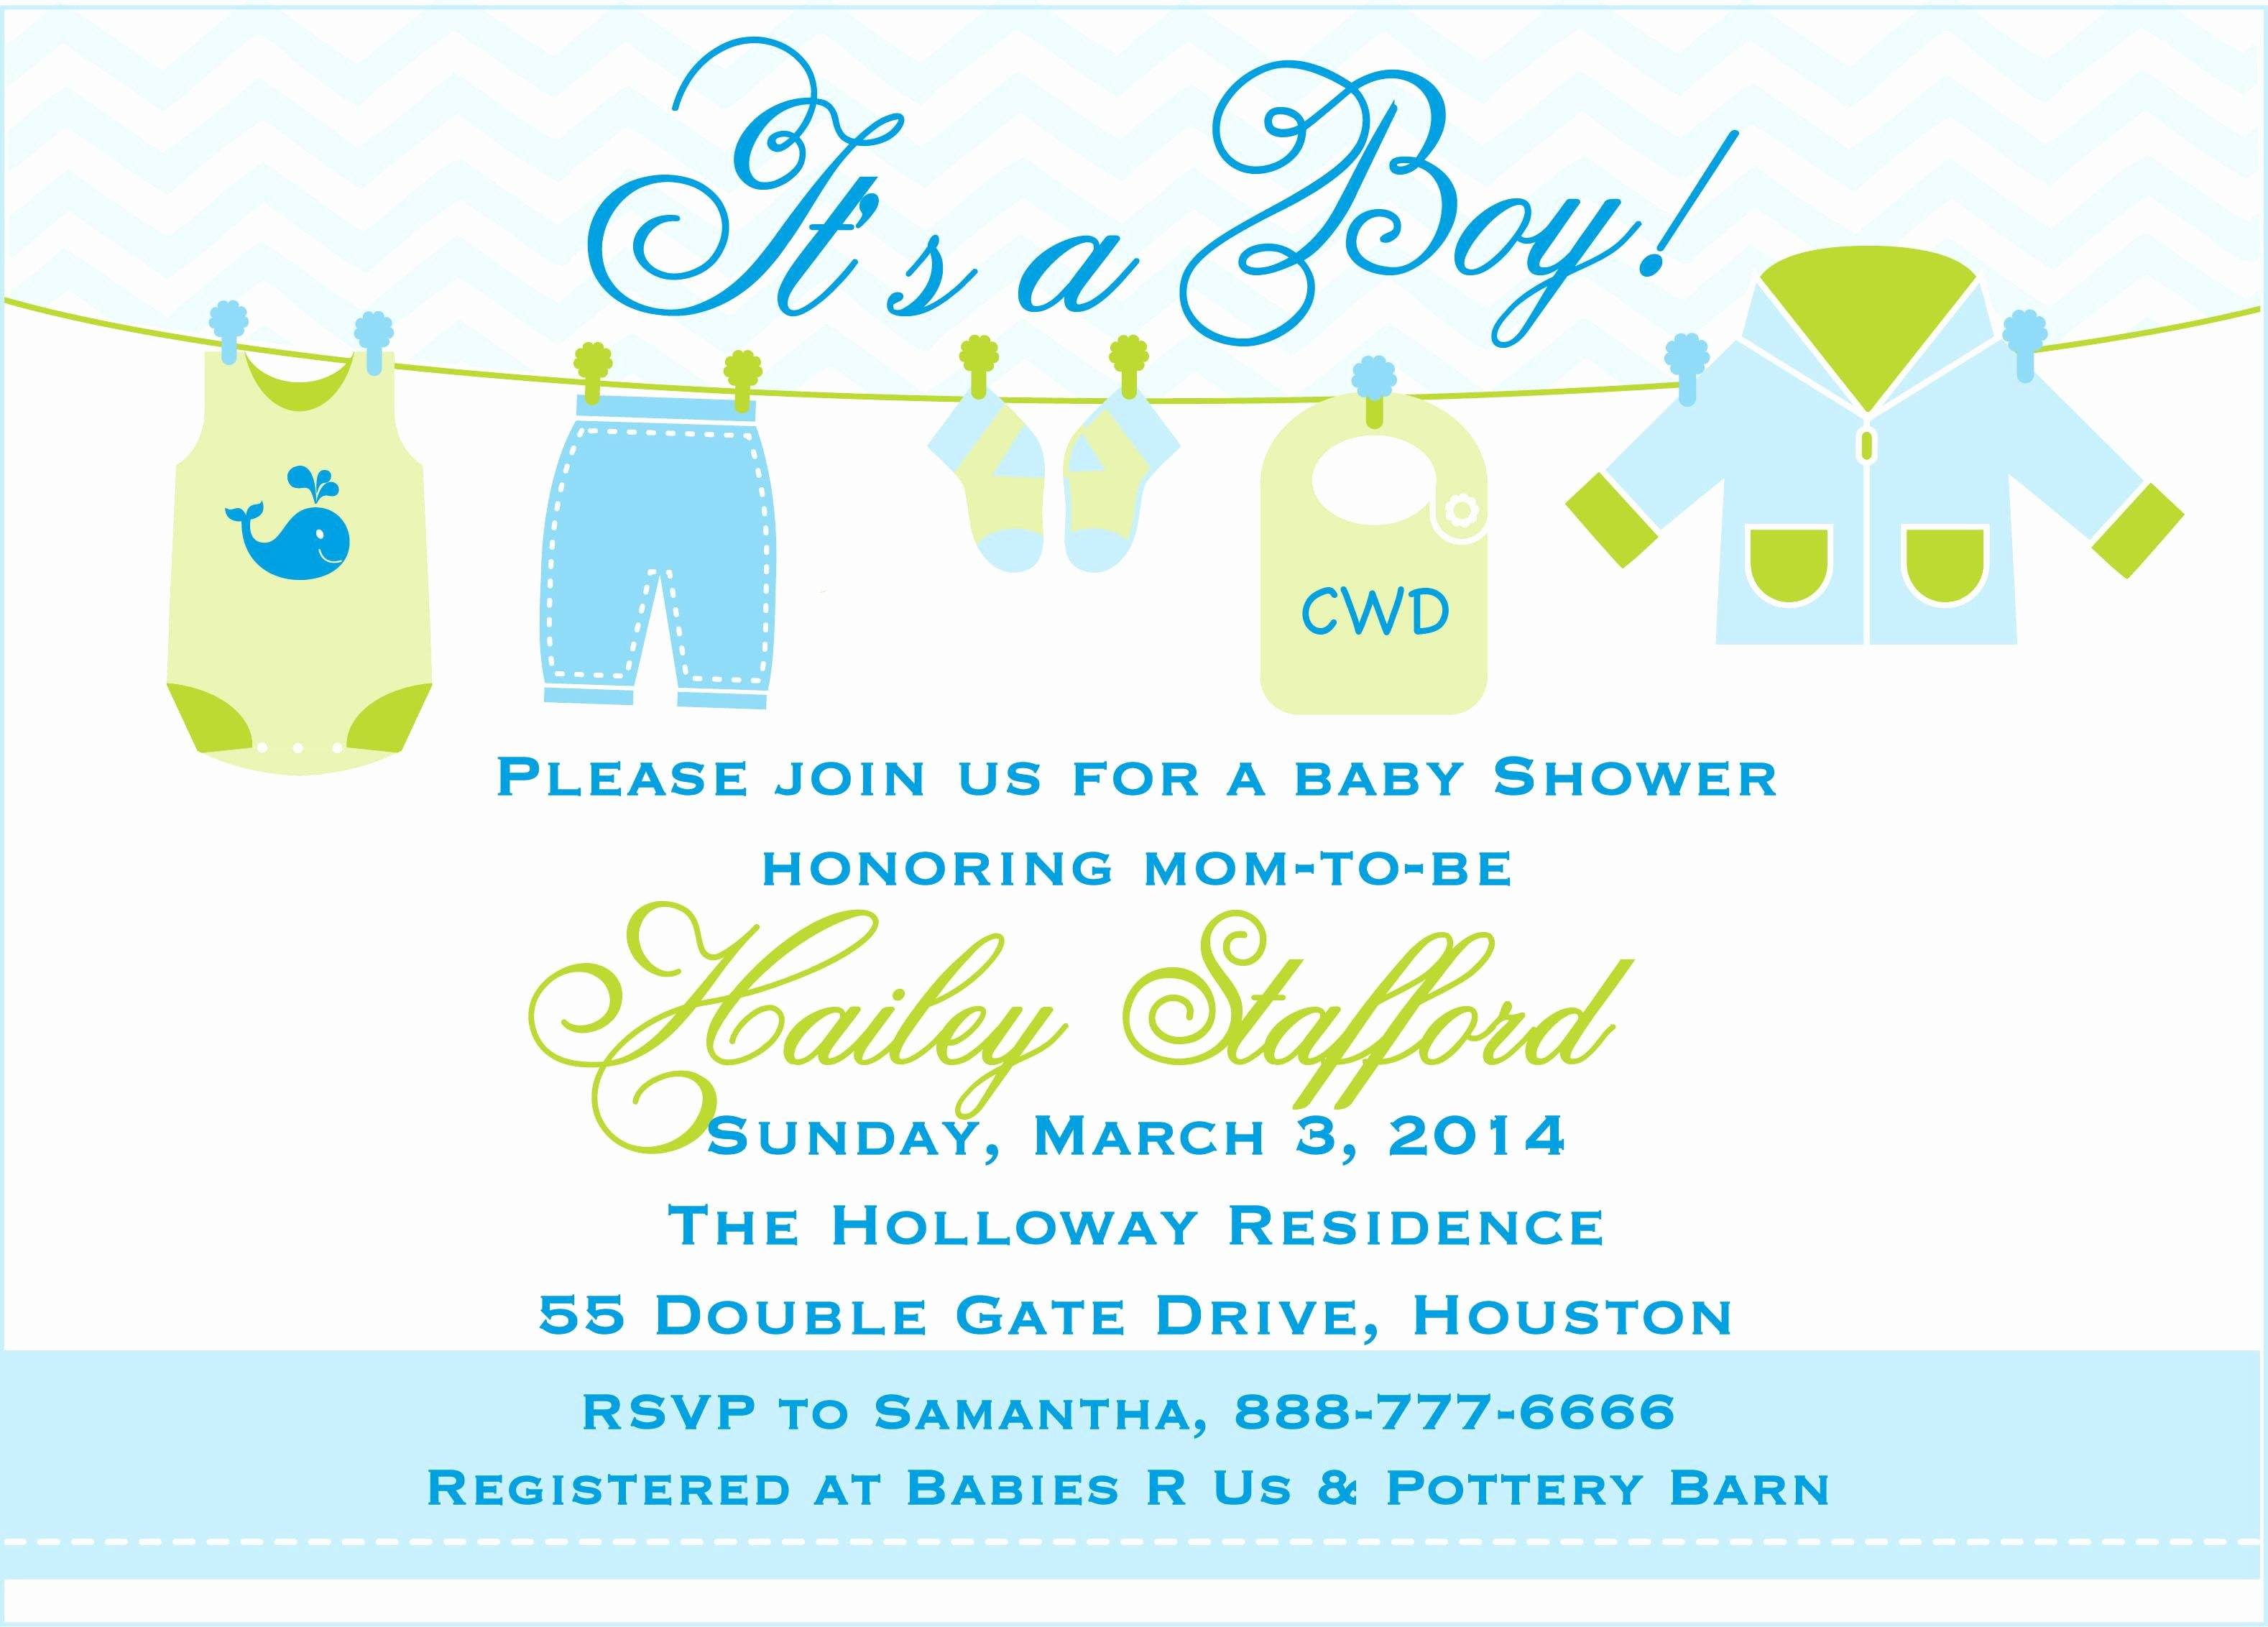 Free Baby Shower Templates Beautiful Free Printable Baby Shower Invitations Templates for Boys